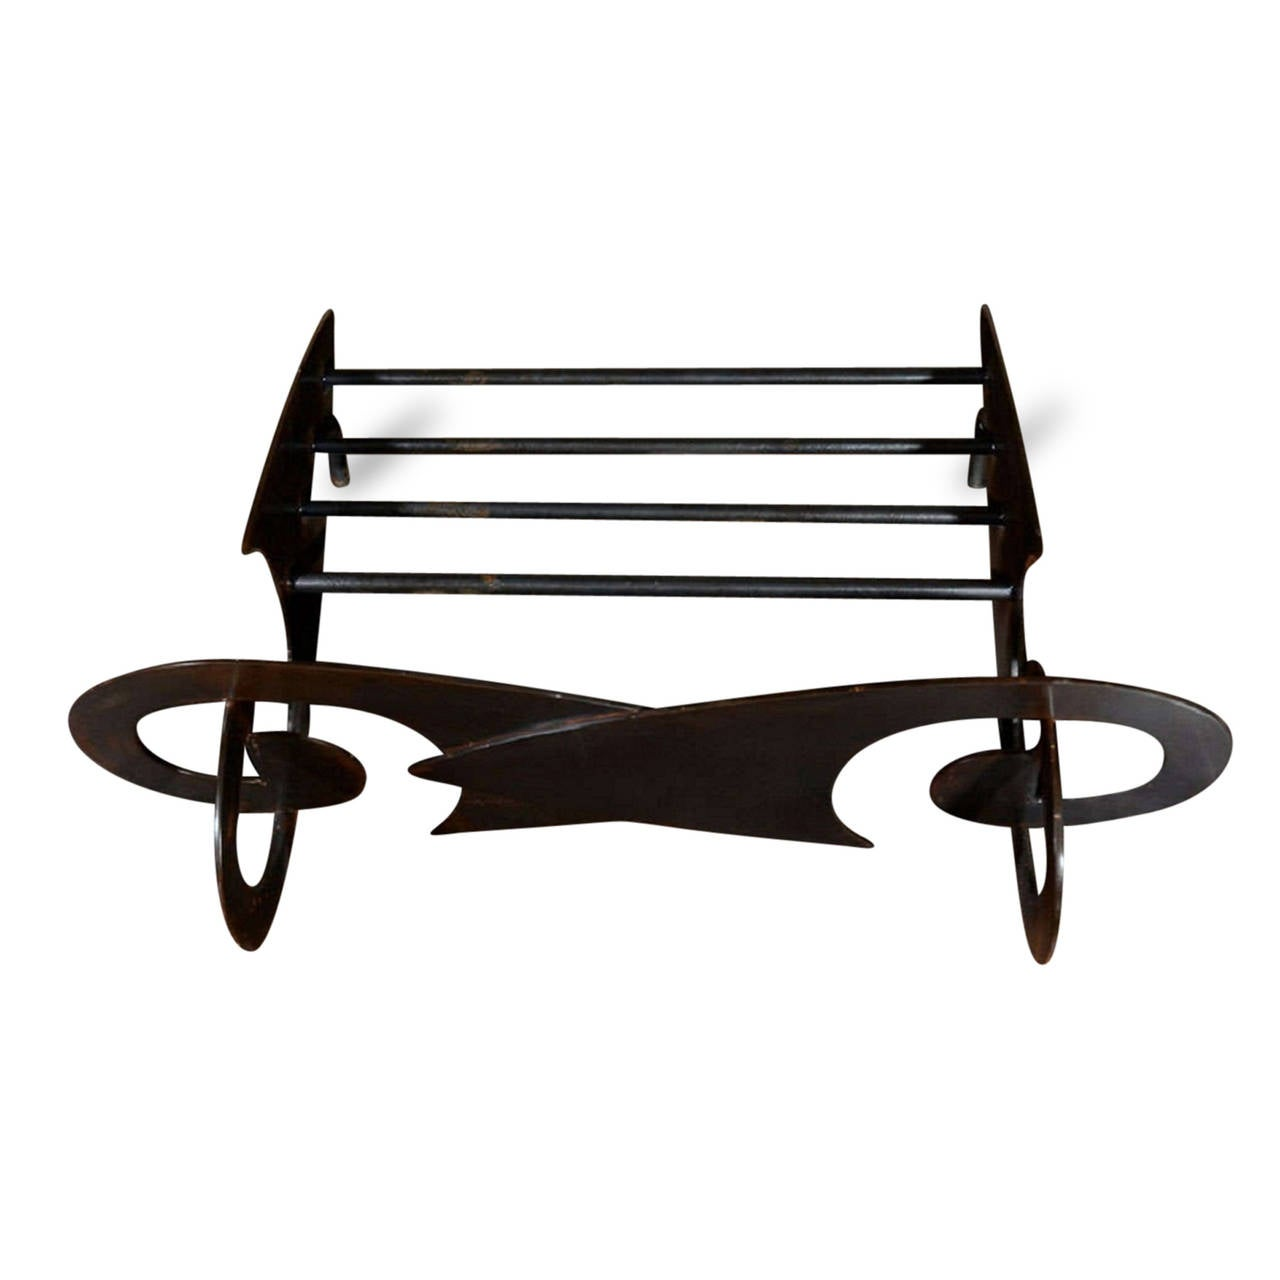 Elaborate Curved Steel French Fireplace Grate For Sale At 1stdibs